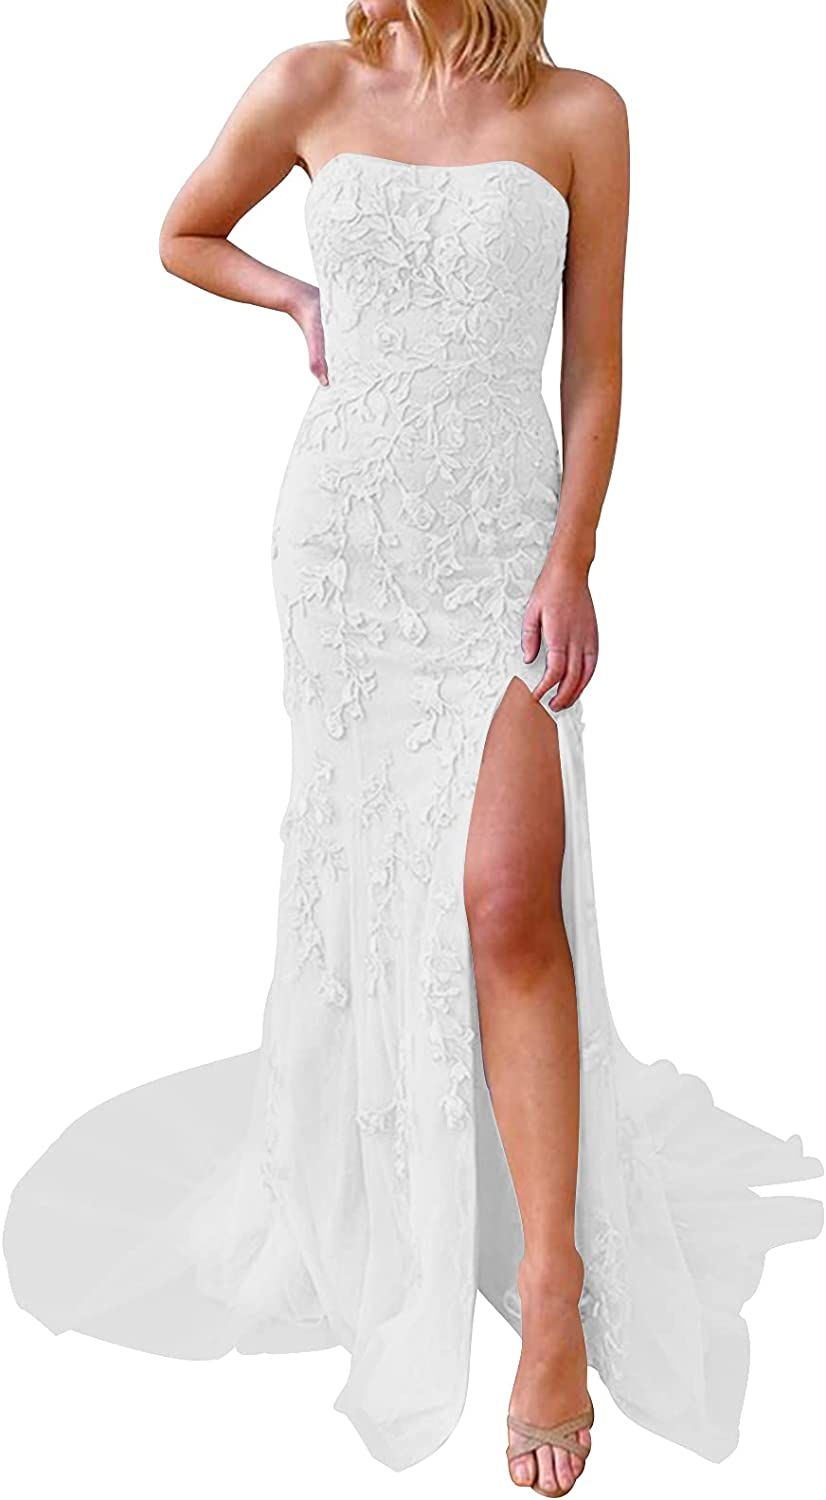 Wedding Dress for Bride Lace Bride Dresses Strapless Bridal Gown with Split Wedding Gowns